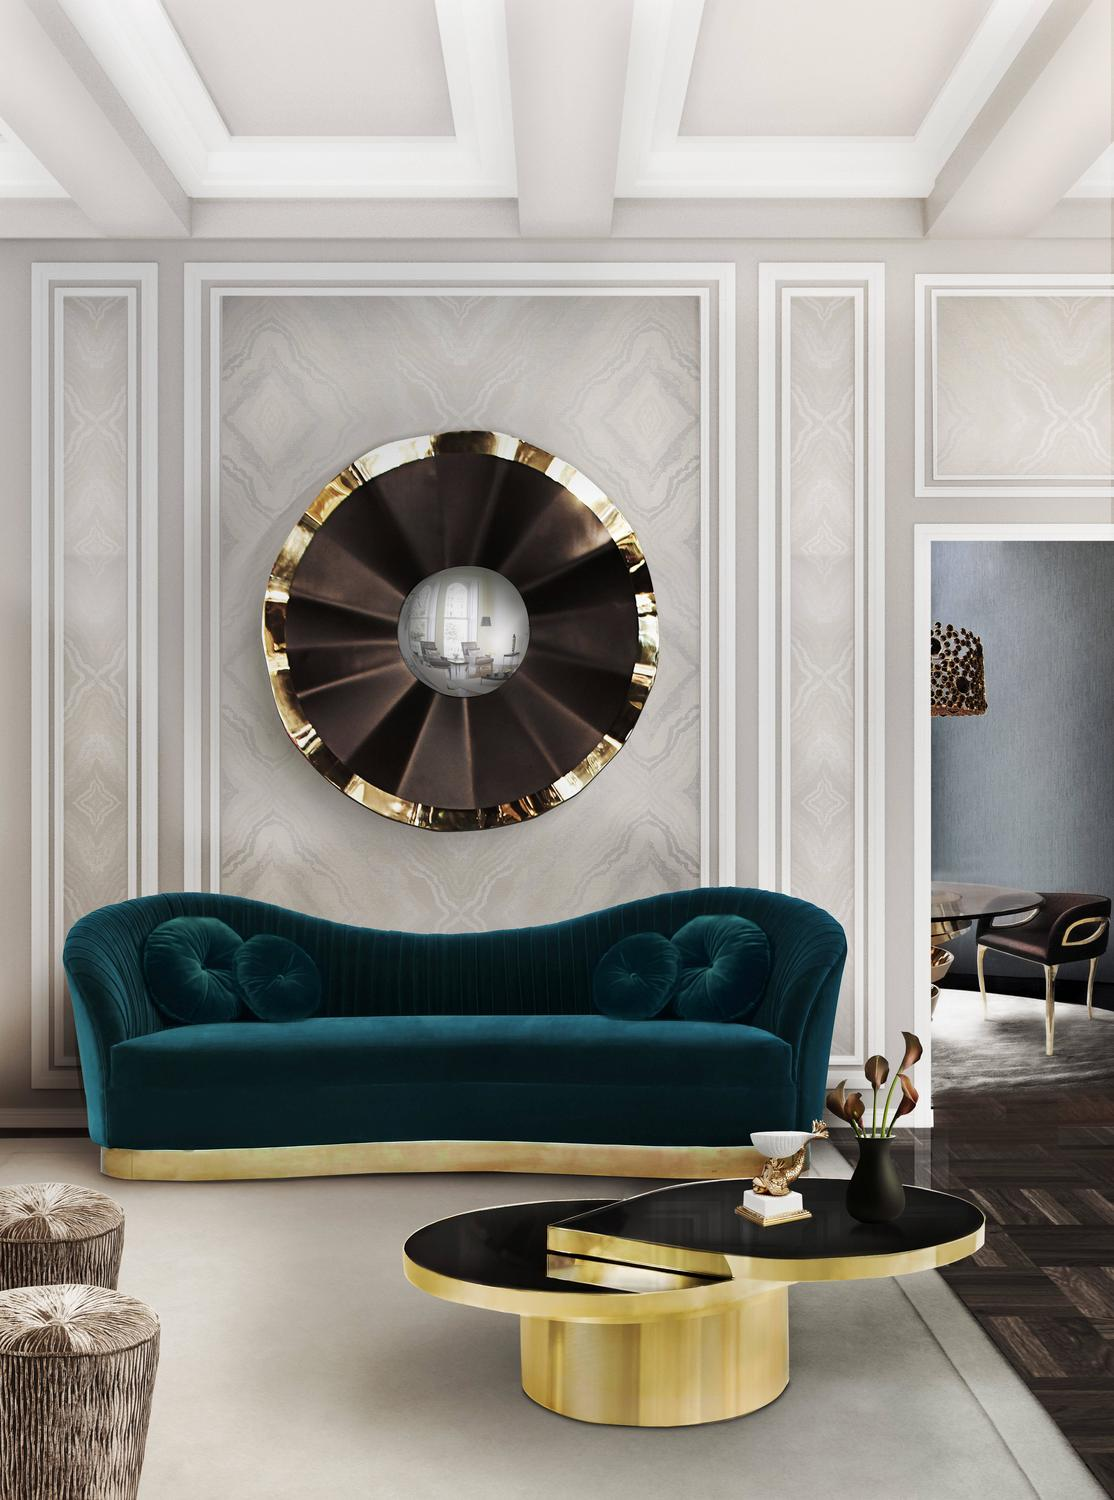 The Perfect Design Pieces by KOKET to Create a Beautiful Living Room design pieces by koket The Perfect Design Pieces by KOKET to Create a Beautiful Living Room The Perfect Design Pieces by KOKET to Create a Beautiful Living Room2